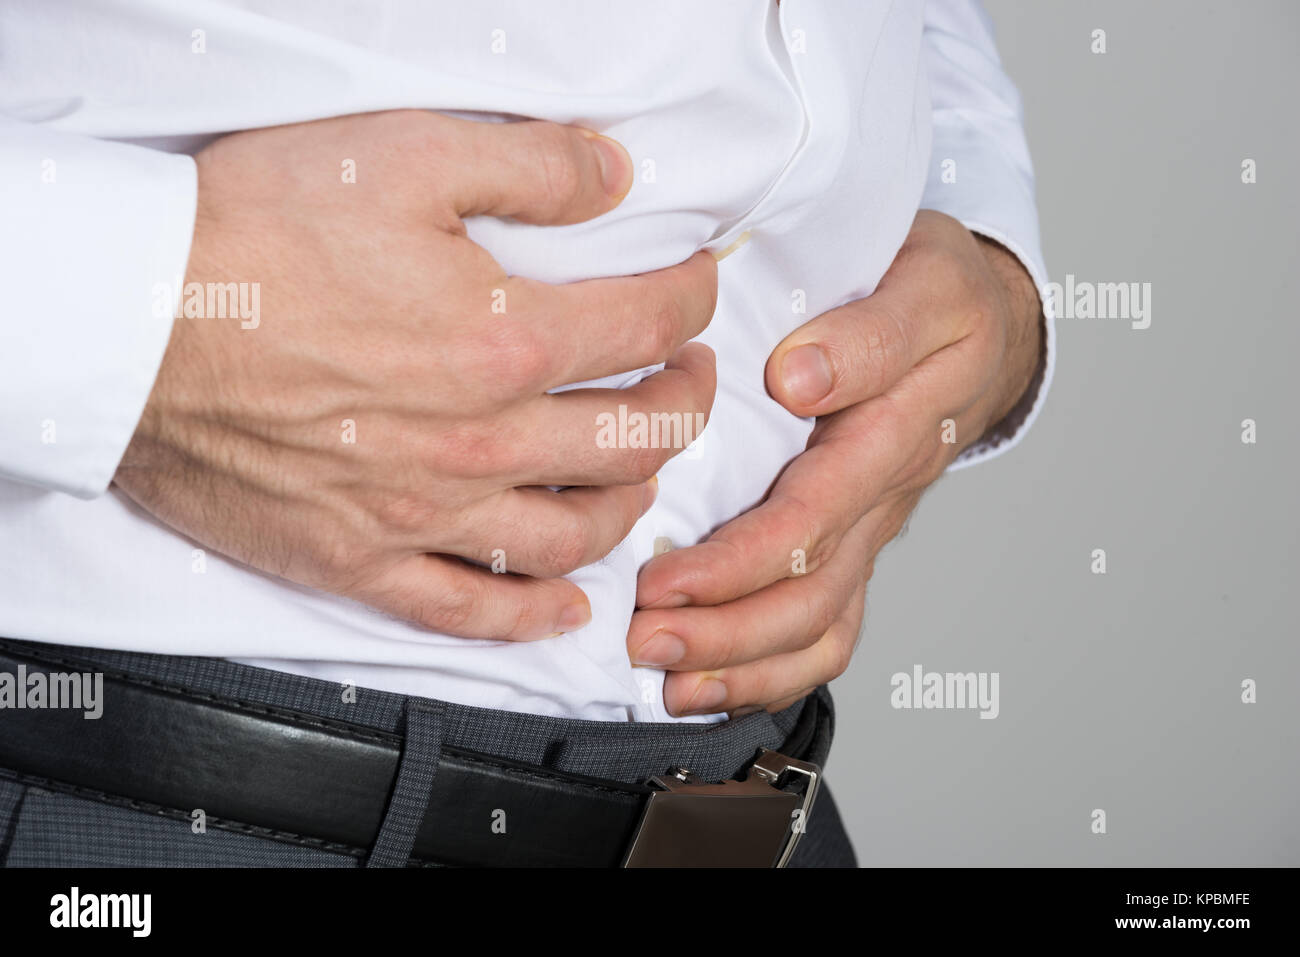 Businessman Suffering From Stomach Ache - Stock Image